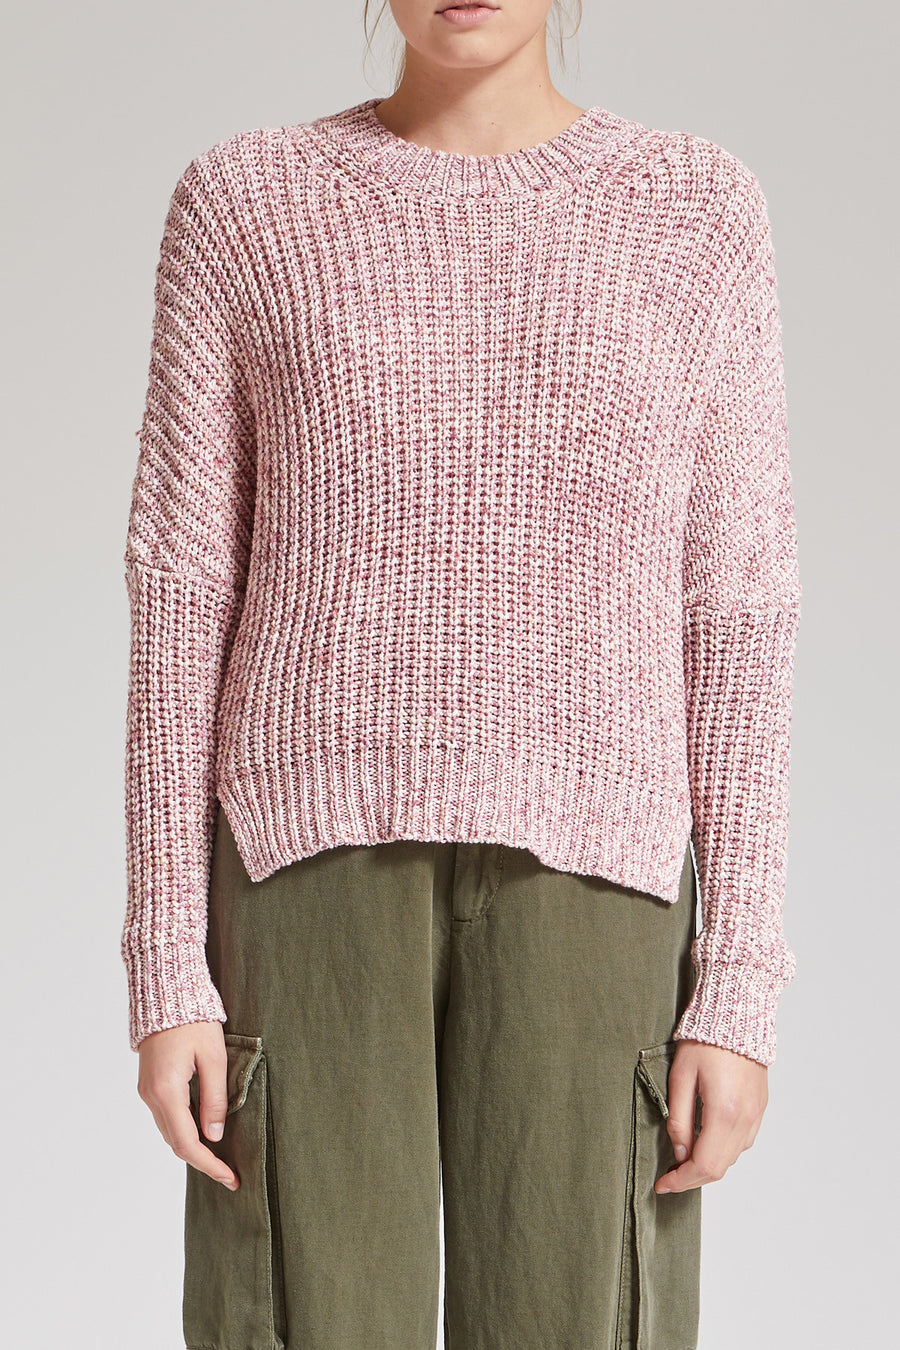 DUSTY ROSE SPRAYED KNITTED SWEATER